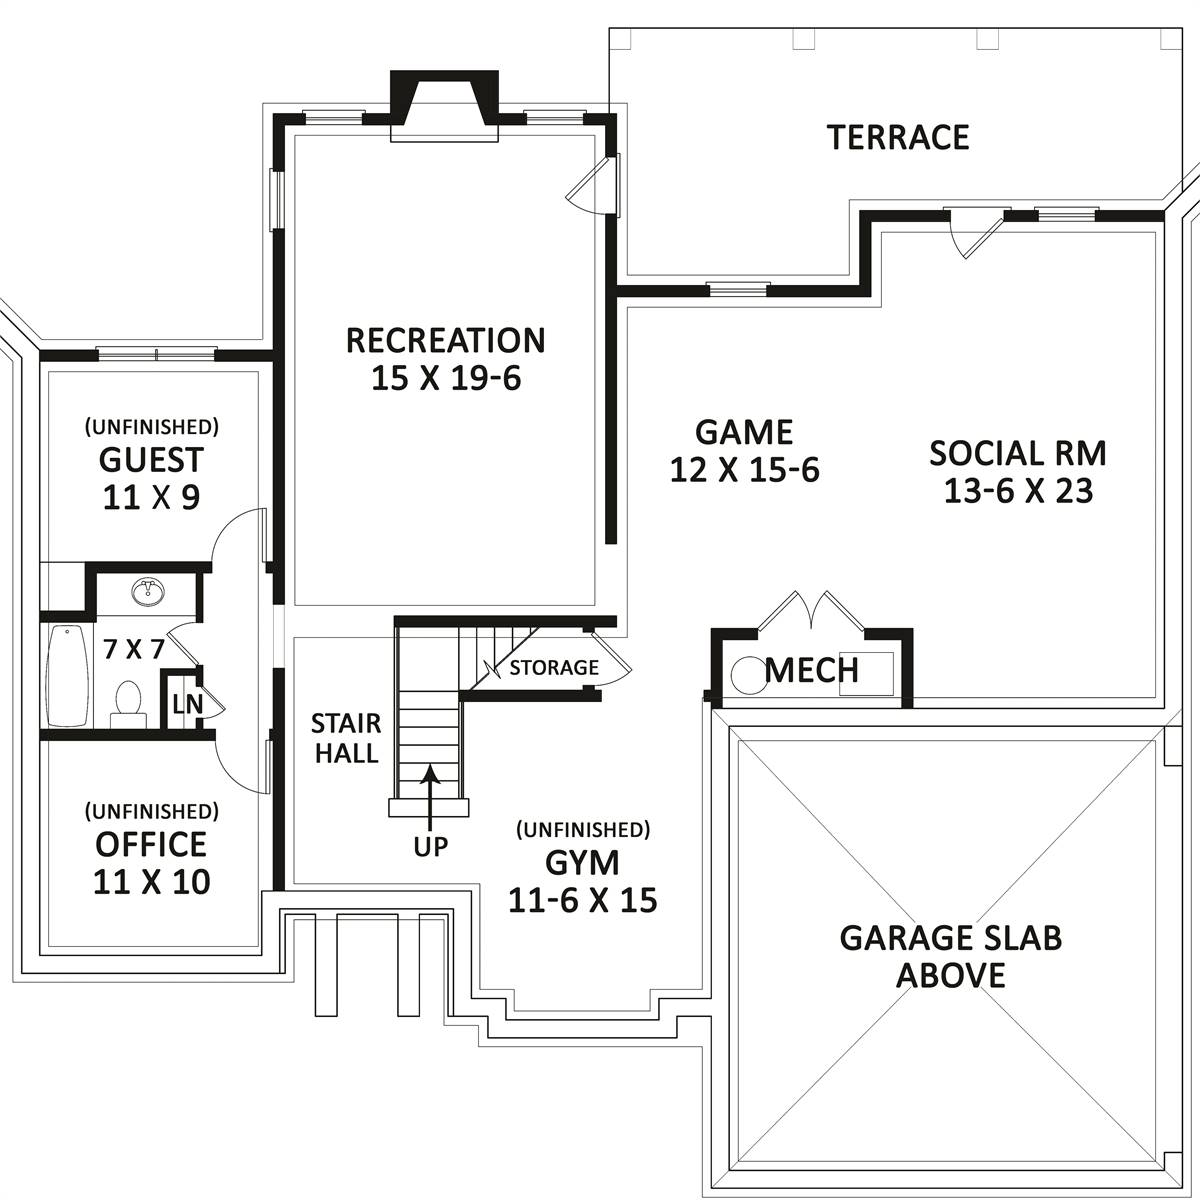 Basement Plan image of Linnwood House Plan